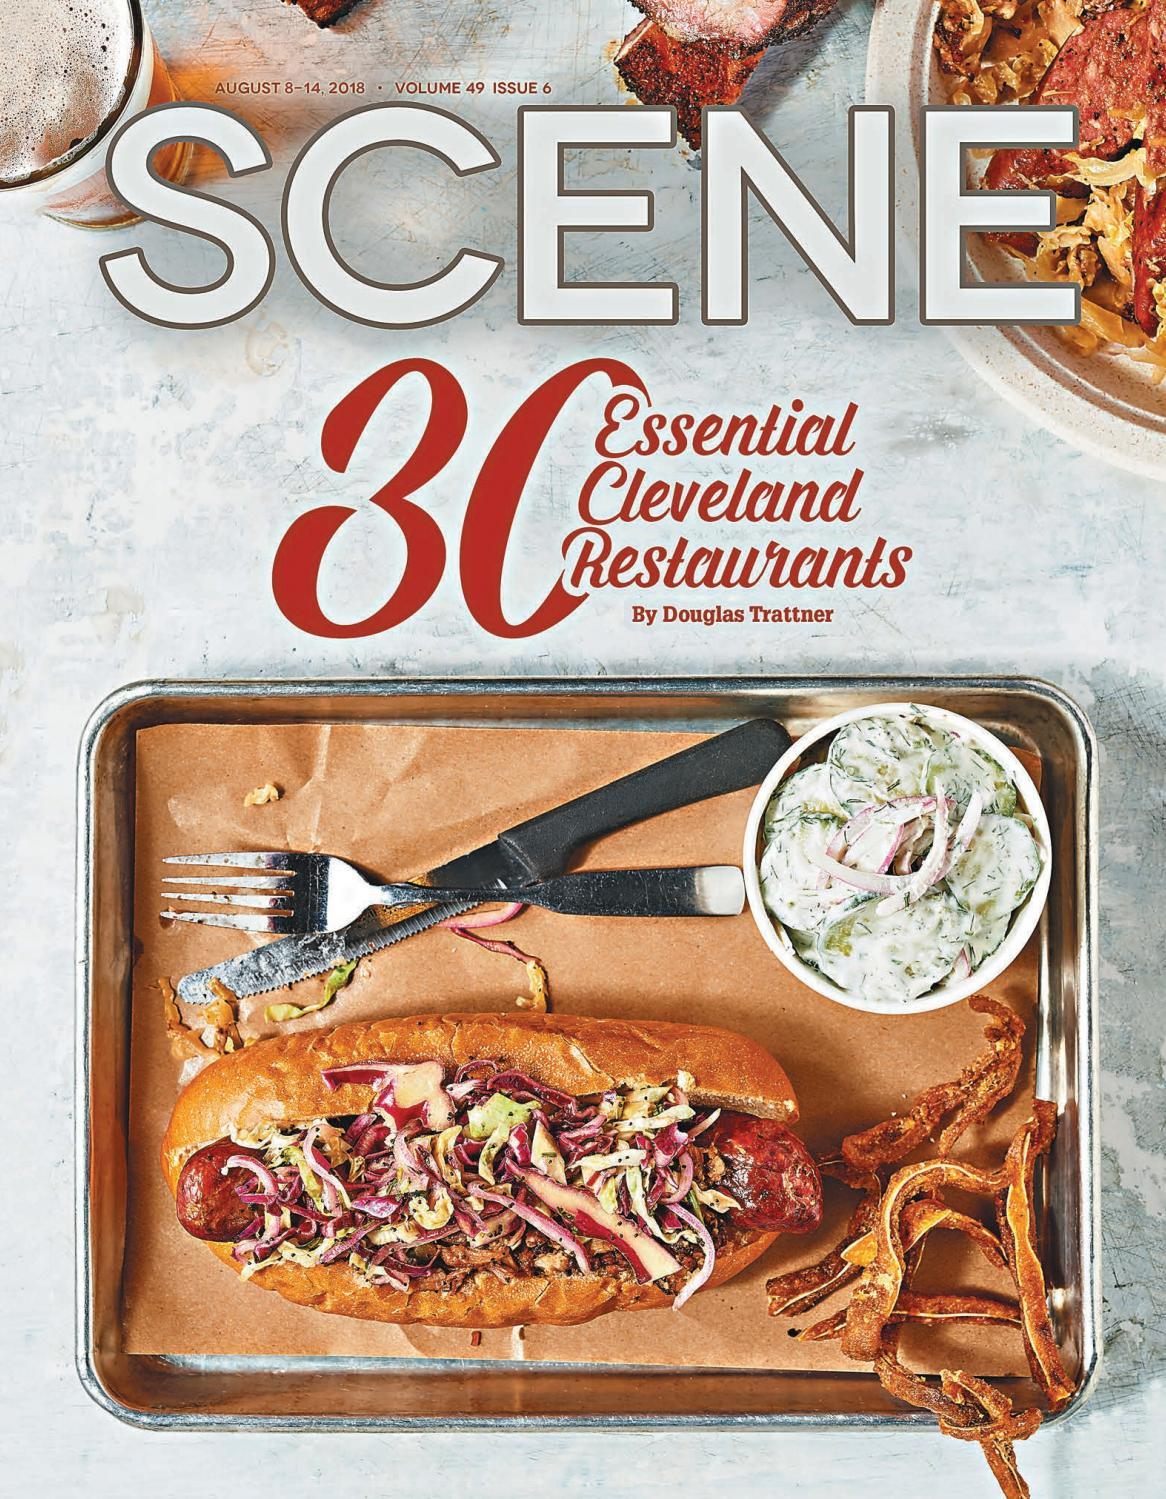 Scene August 8 2018 By Euclid Media Group Issuu